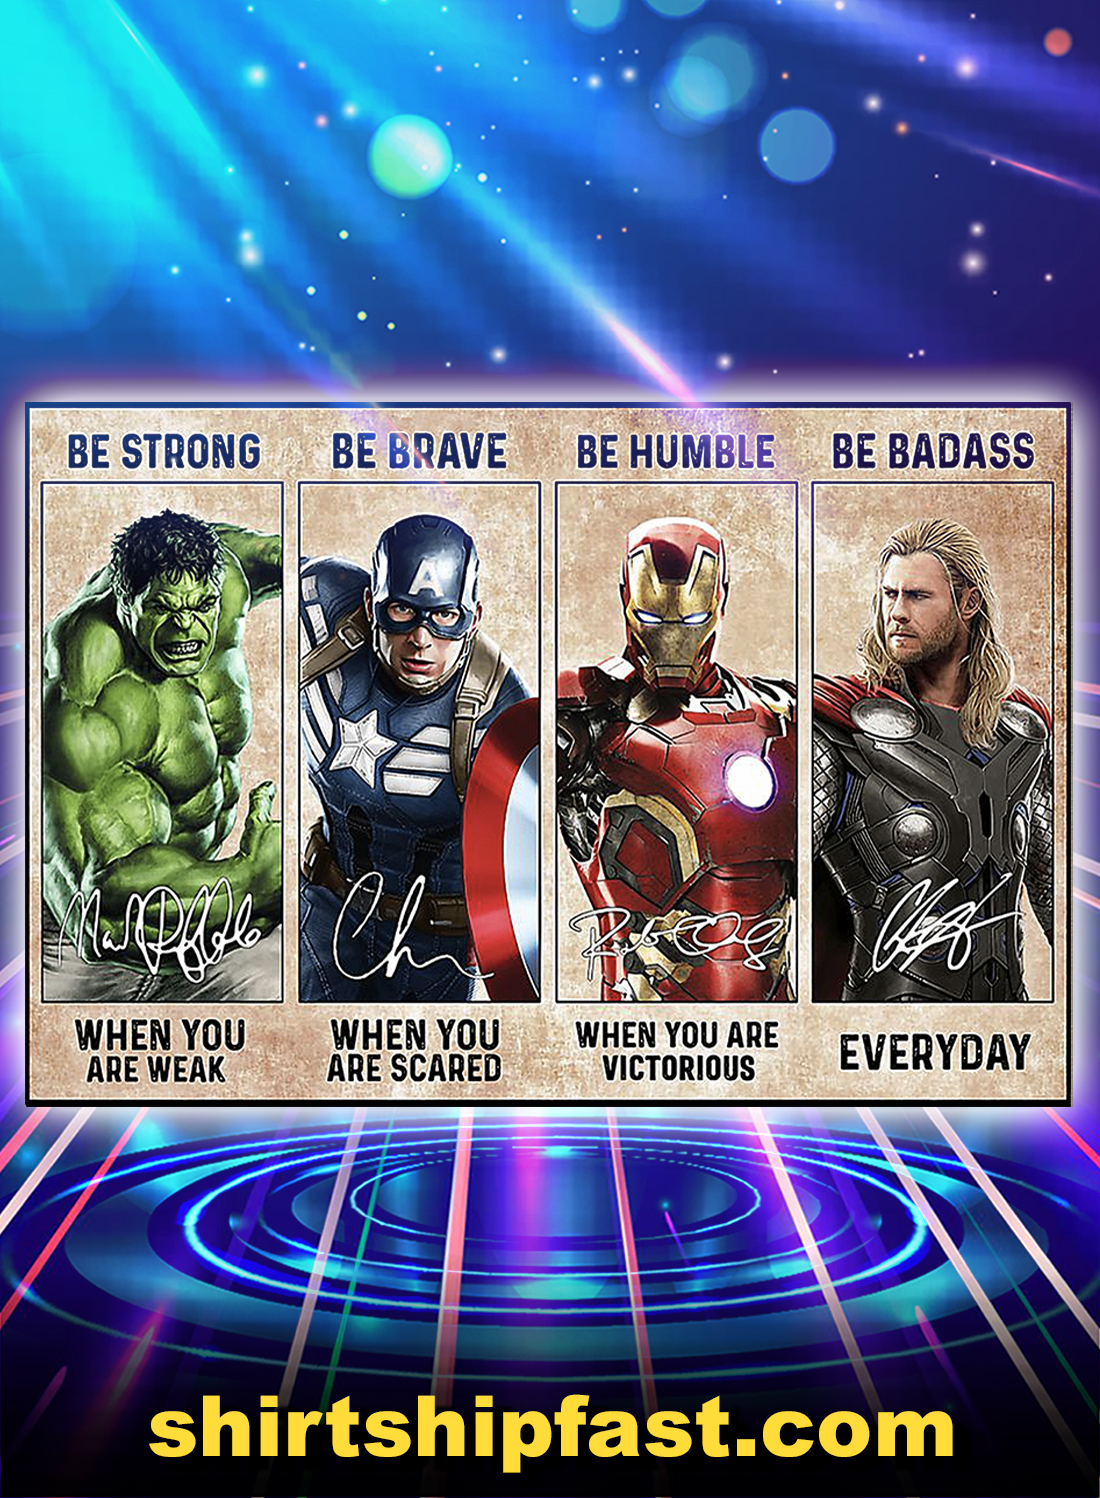 Poster Avengers be strong be brave be humble be badass - A4